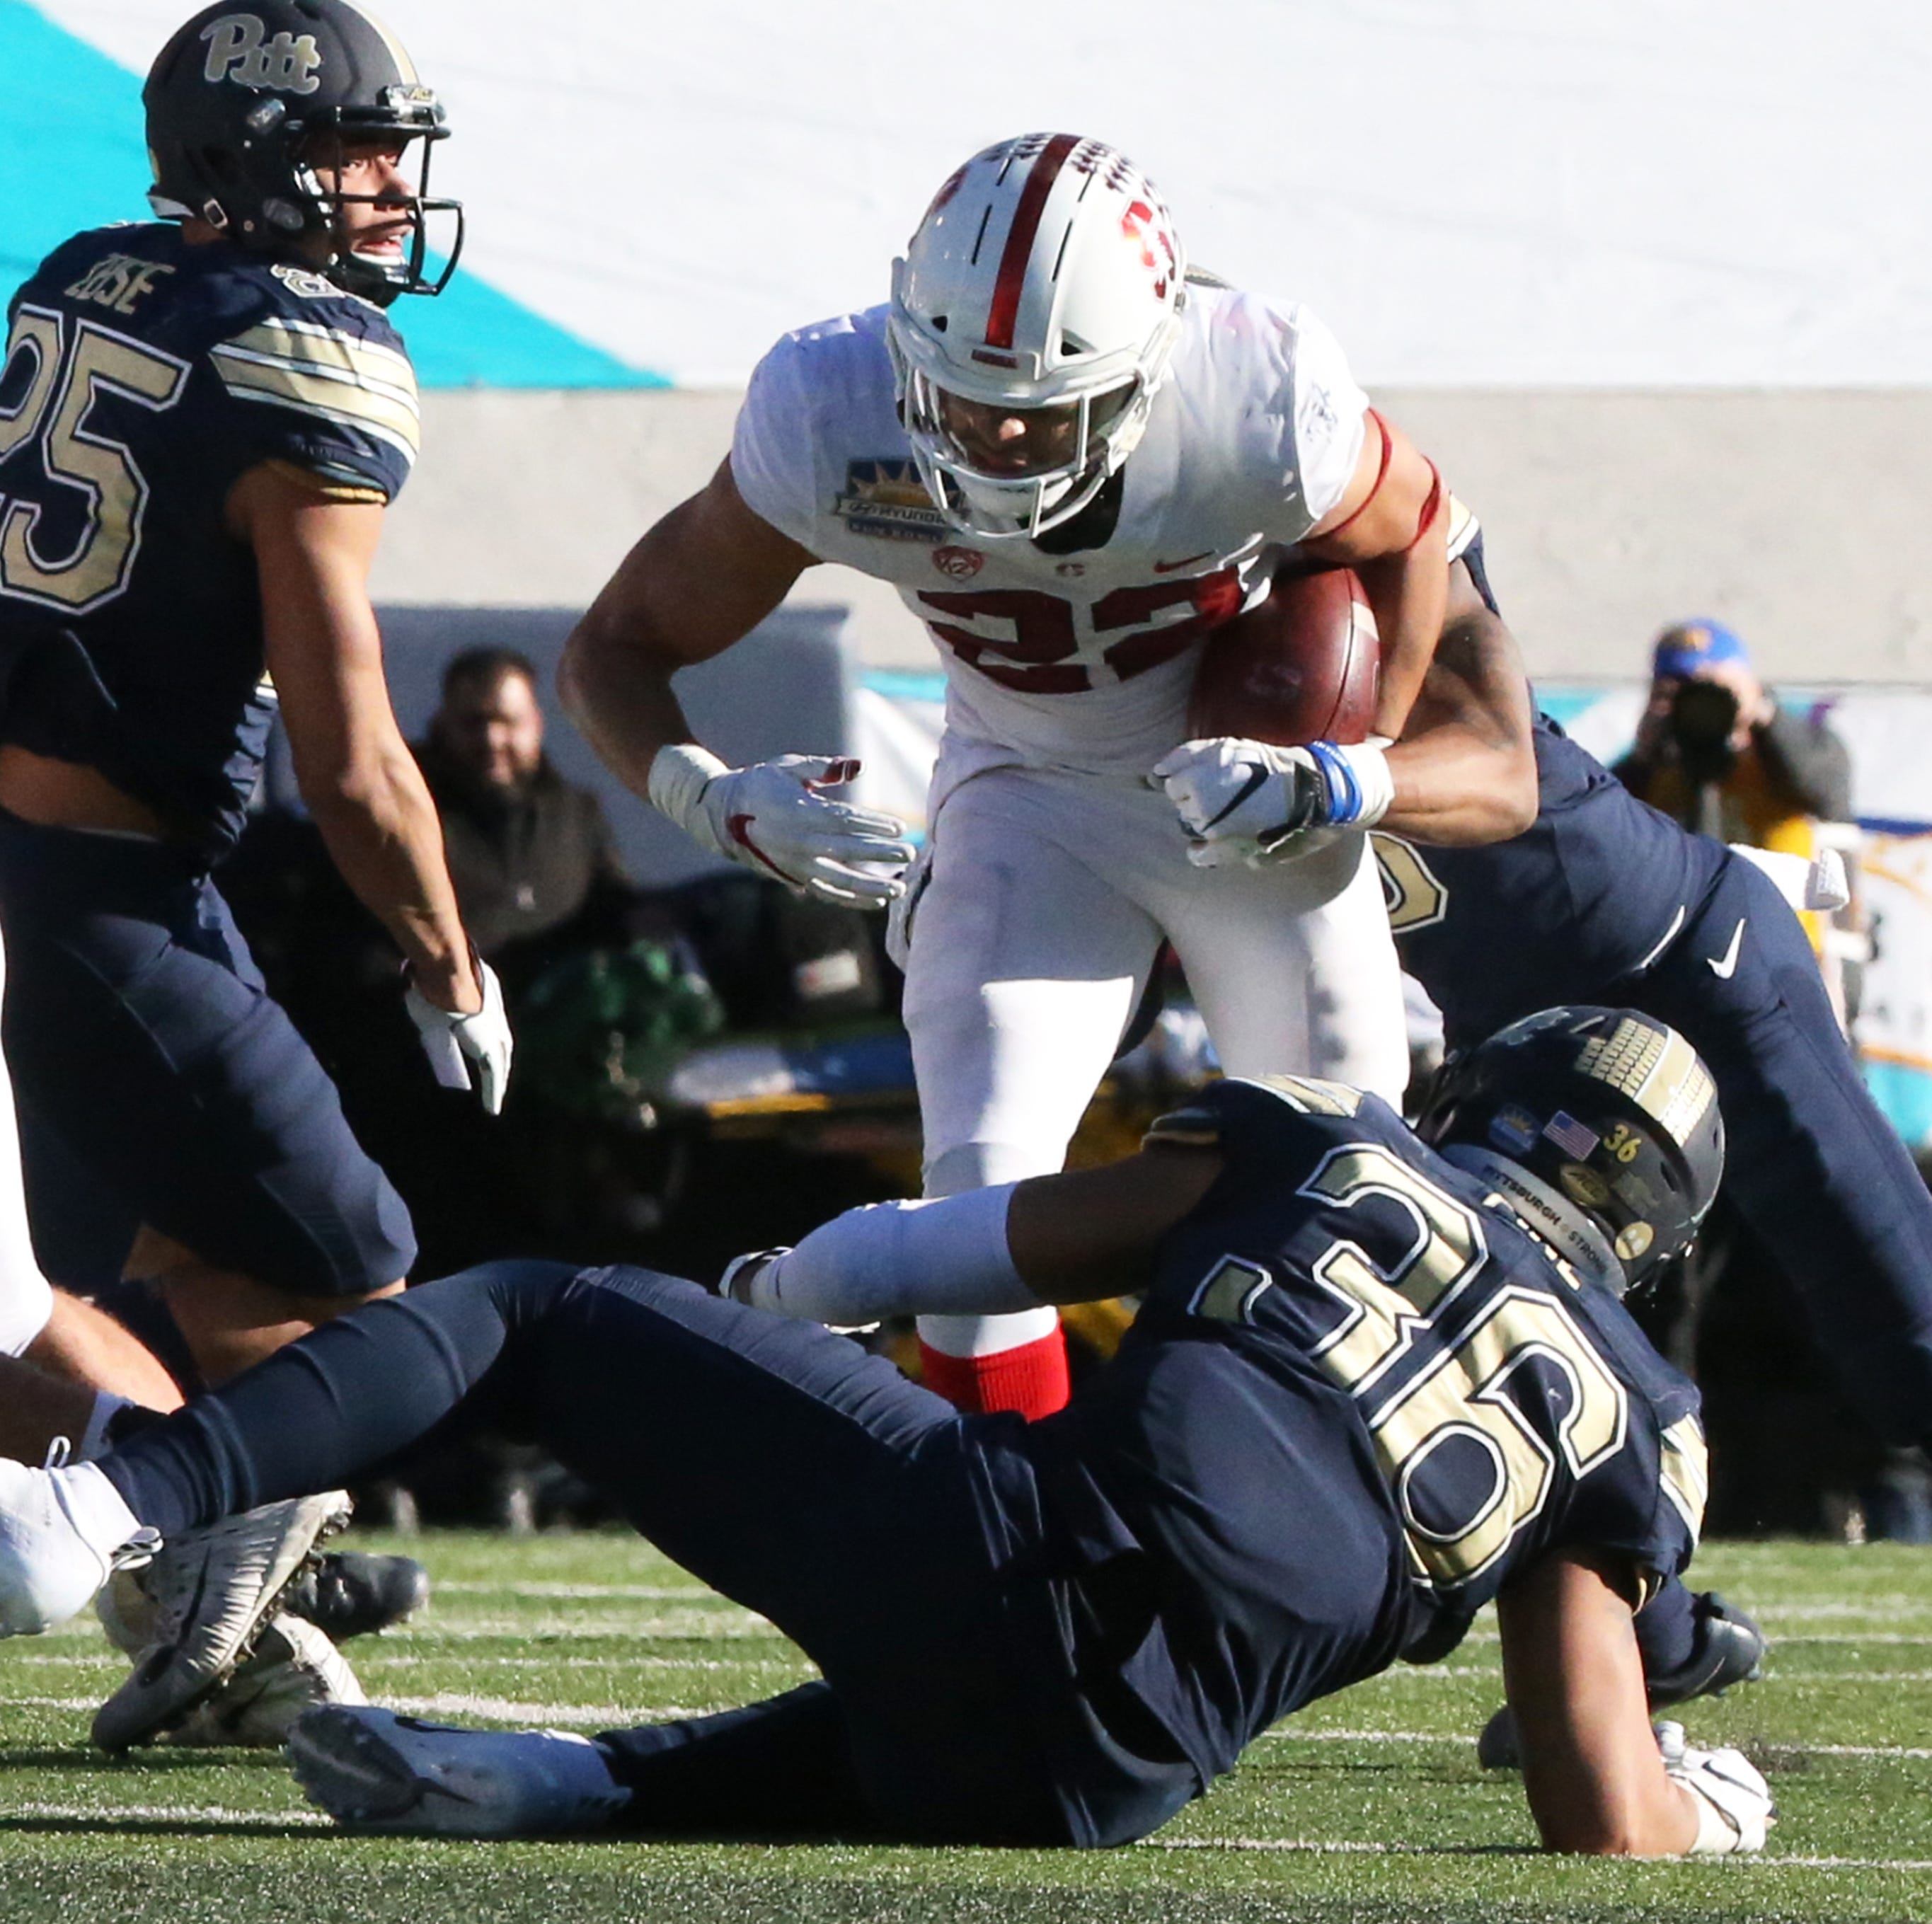 Sun Bowl MVP goes to backup who started in Stanford vs. Pitt because of injury